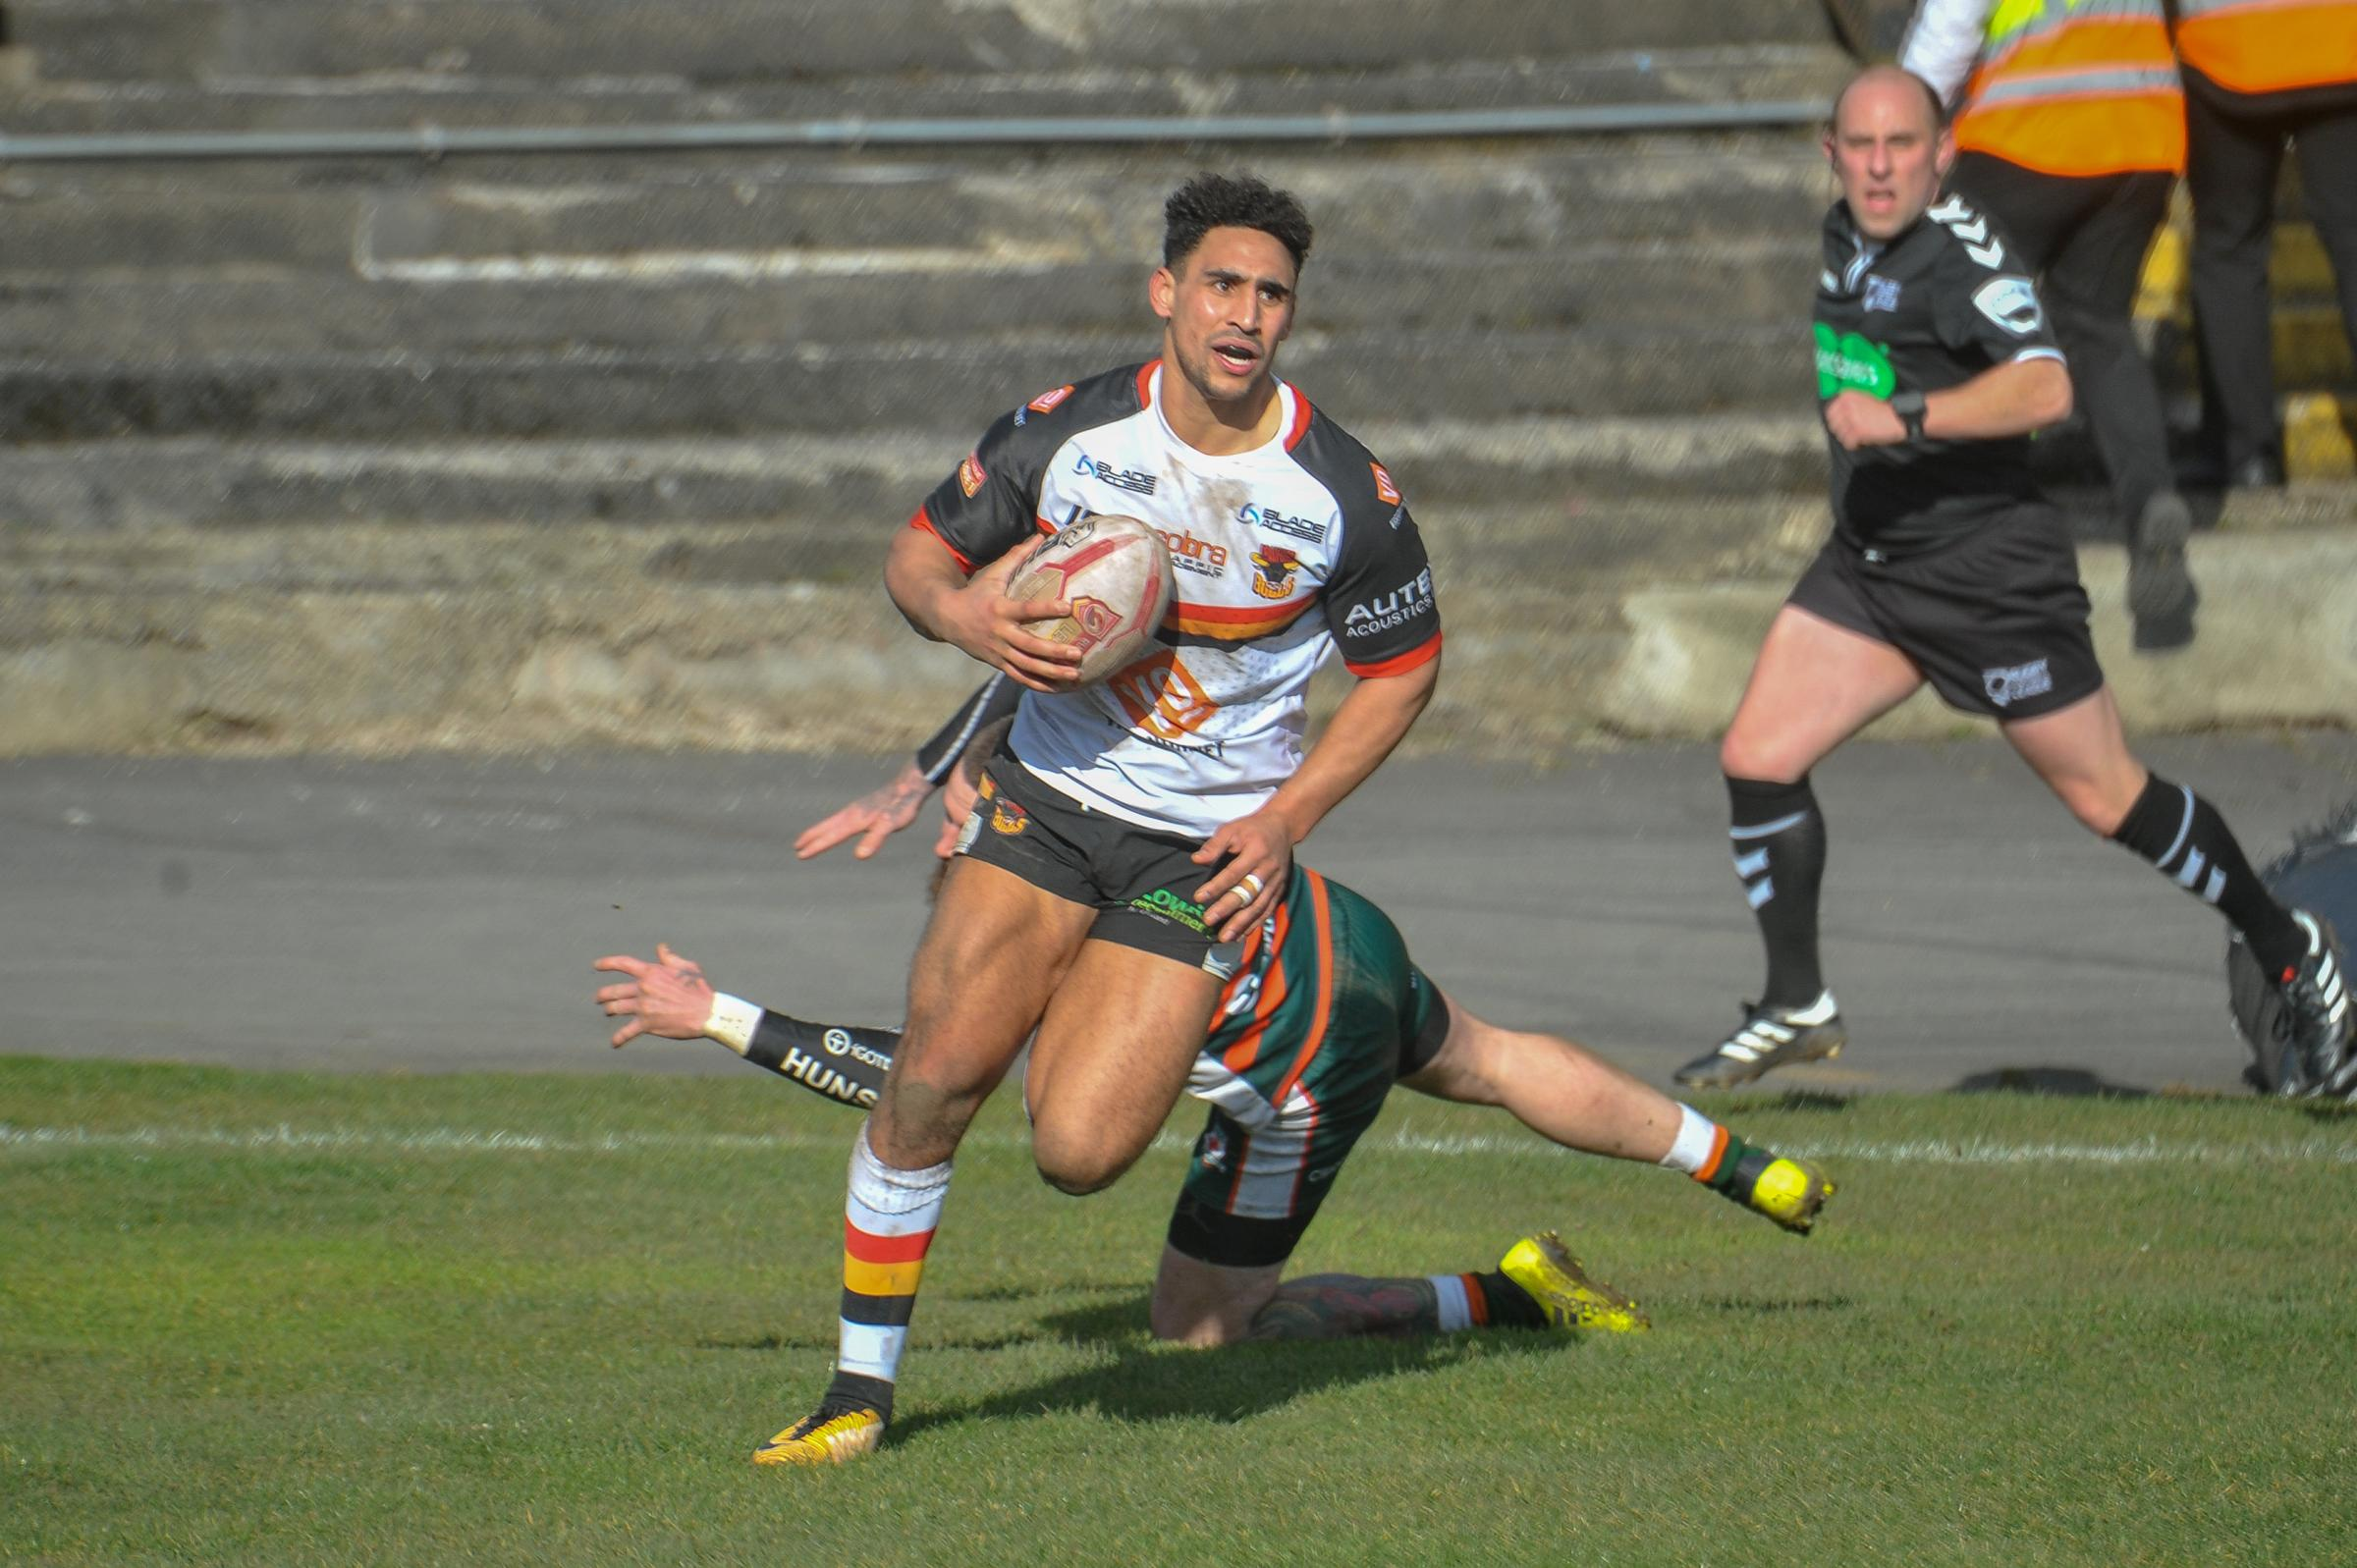 Dalton Grant will be looking to impress against Super League opposition today Picture: Tom Pearson